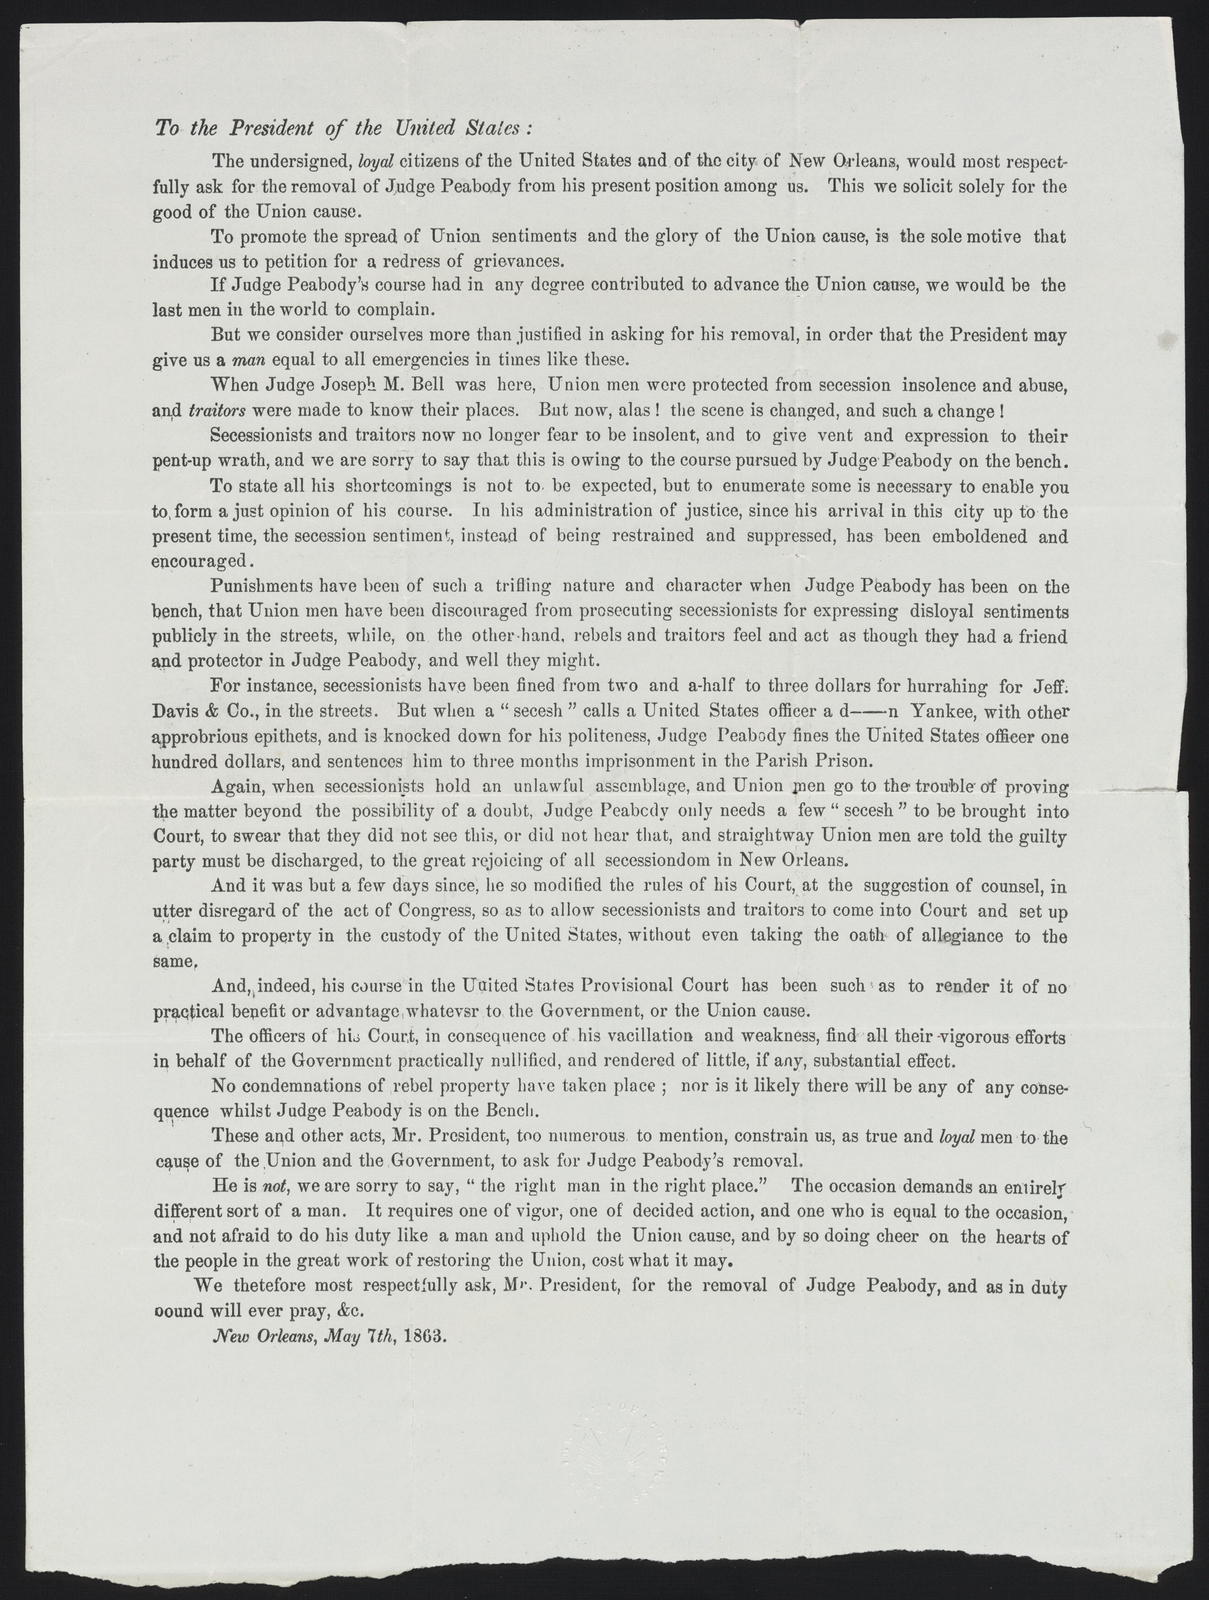 To the President of the United States: The undersigned, loyal citizens of the United States and of the city of New Orleans.